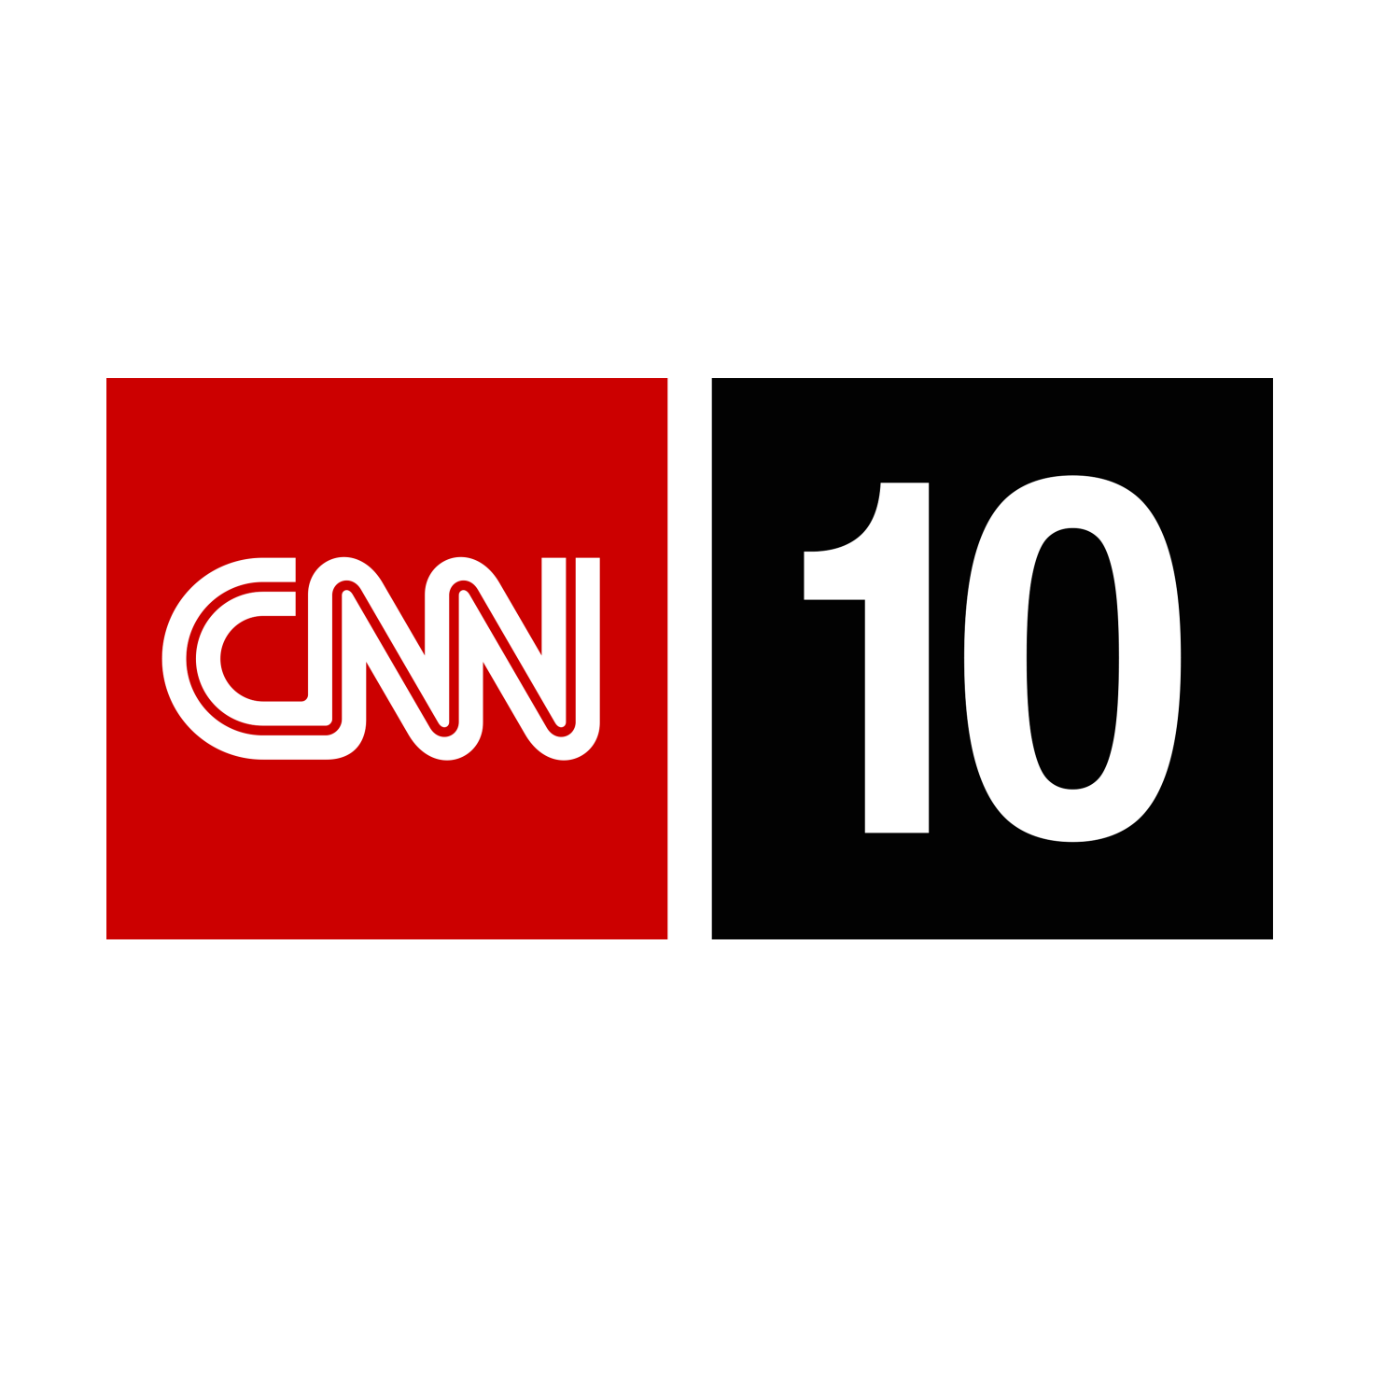 CNN Student News - May 13, 2013